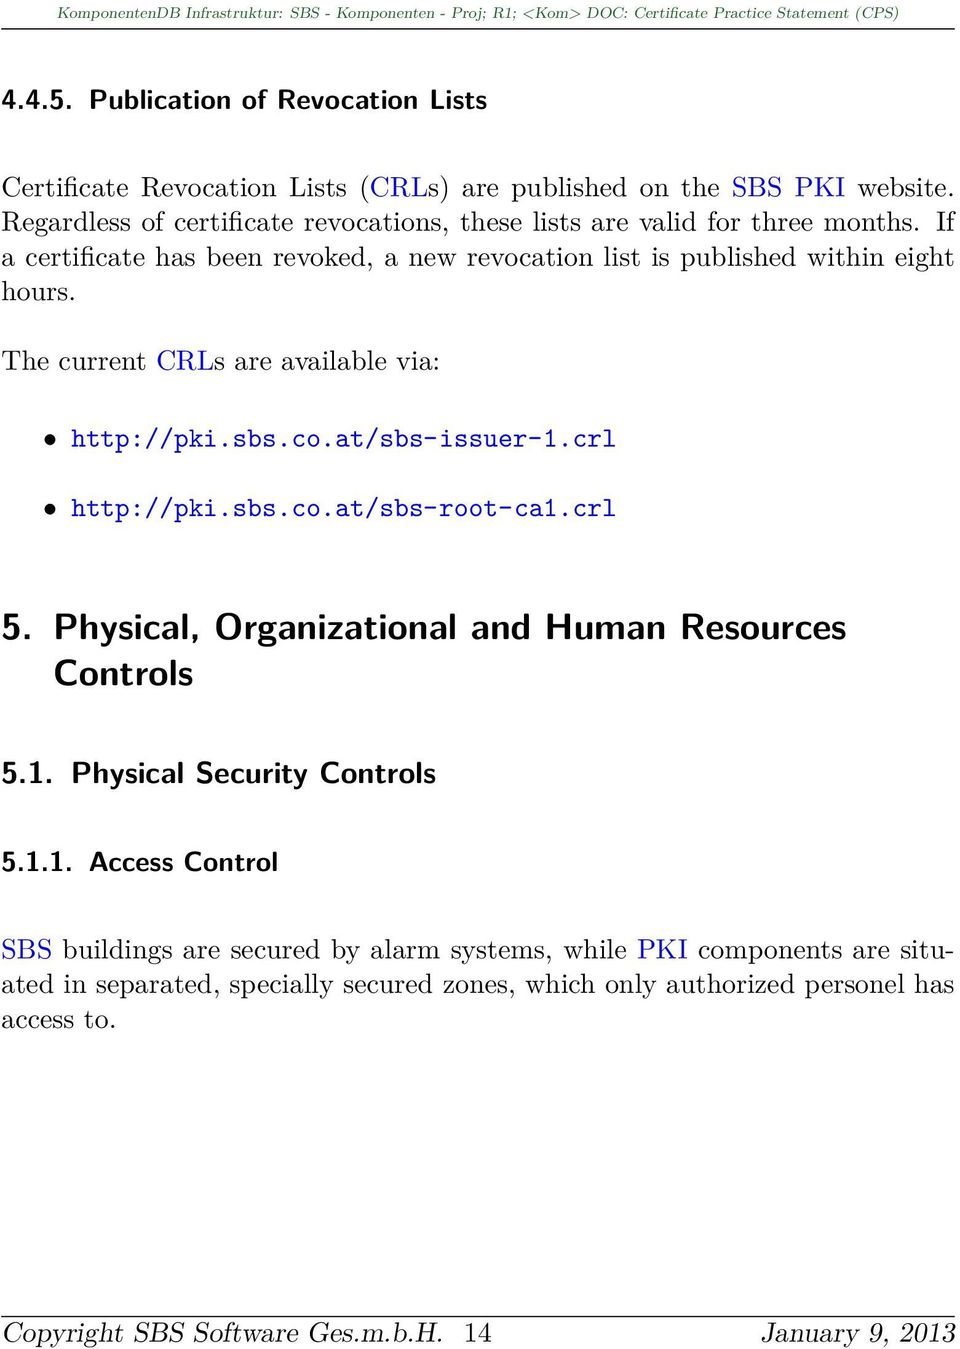 The current CRLs are available via: http://pki.sbs.co.at/sbs-issuer-1.crl http://pki.sbs.co.at/sbs-root-ca1.crl 5. Physical, Organizational and Human Resources Controls 5.1. Physical Security Controls 5.